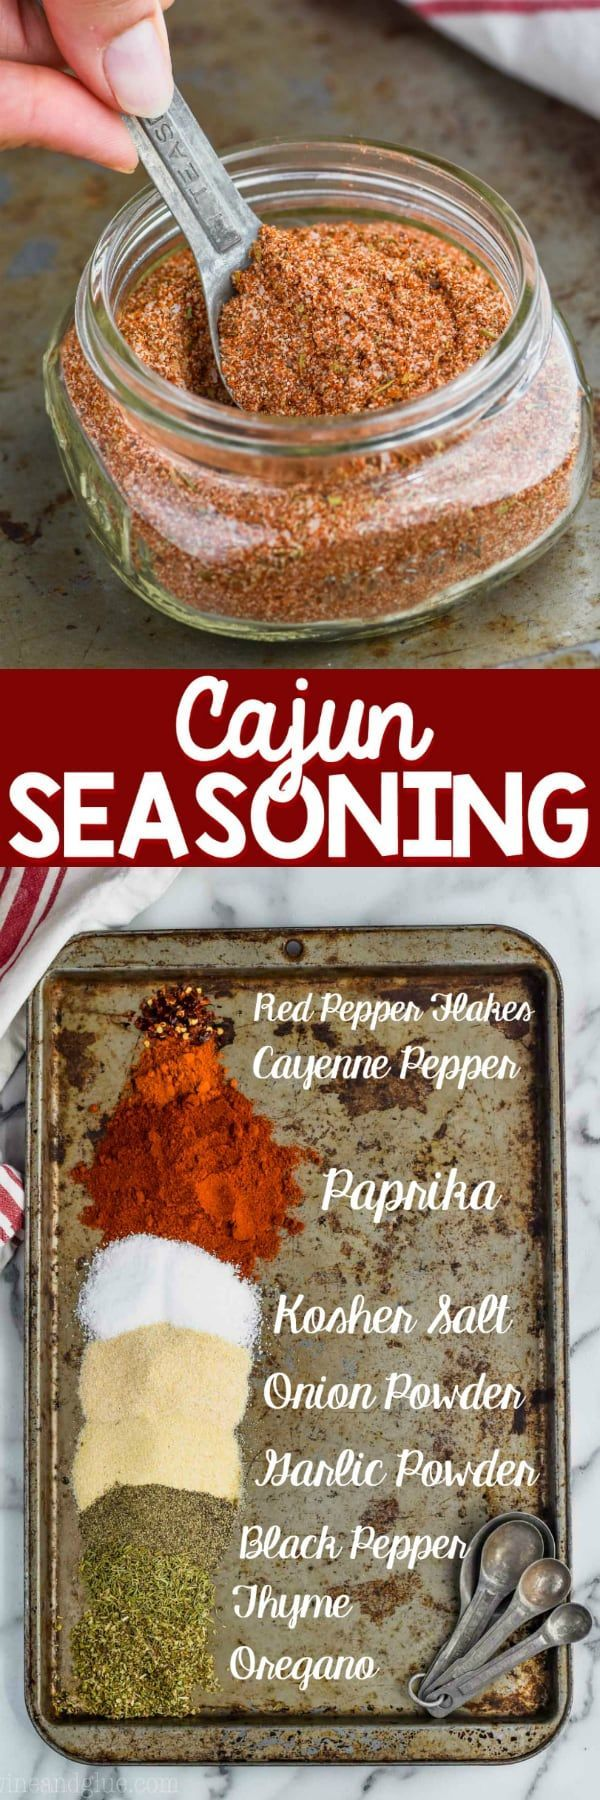 This Cajun Seasoning Recipe is a delicious and eas…